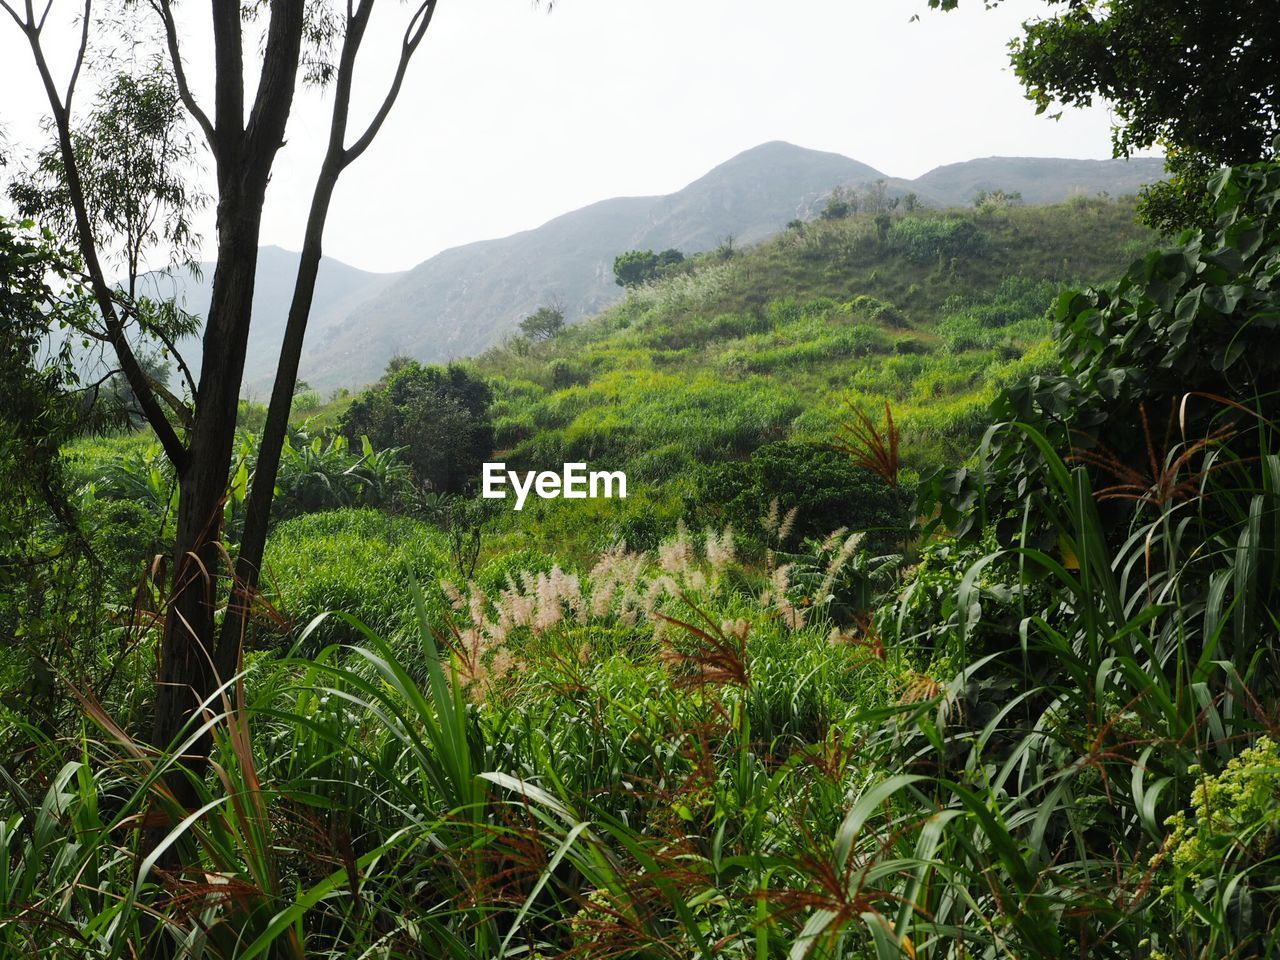 nature, mountain, growth, beauty in nature, scenics, tranquility, tranquil scene, landscape, tree, no people, outdoors, day, plant, lush foliage, green color, field, lush, mountain range, forest, grass, freshness, sky